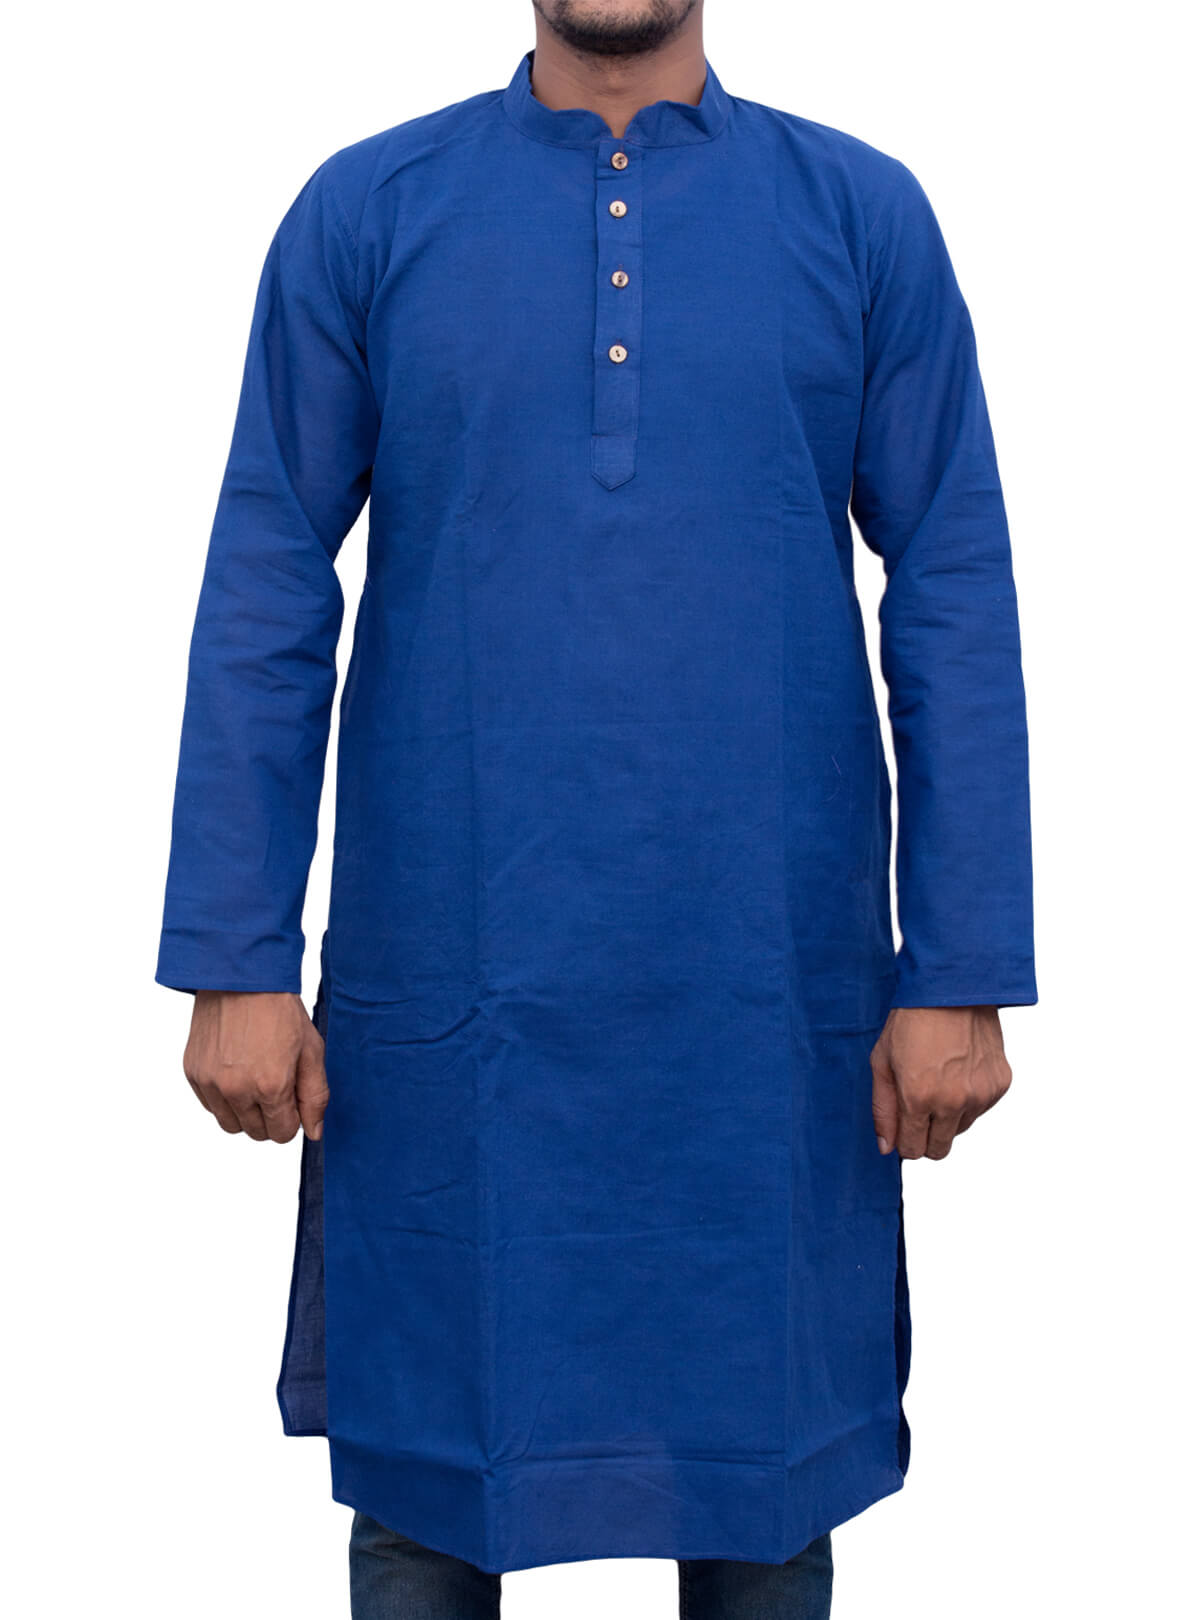 Endeavour Blue Handloom Cotton Panjabi